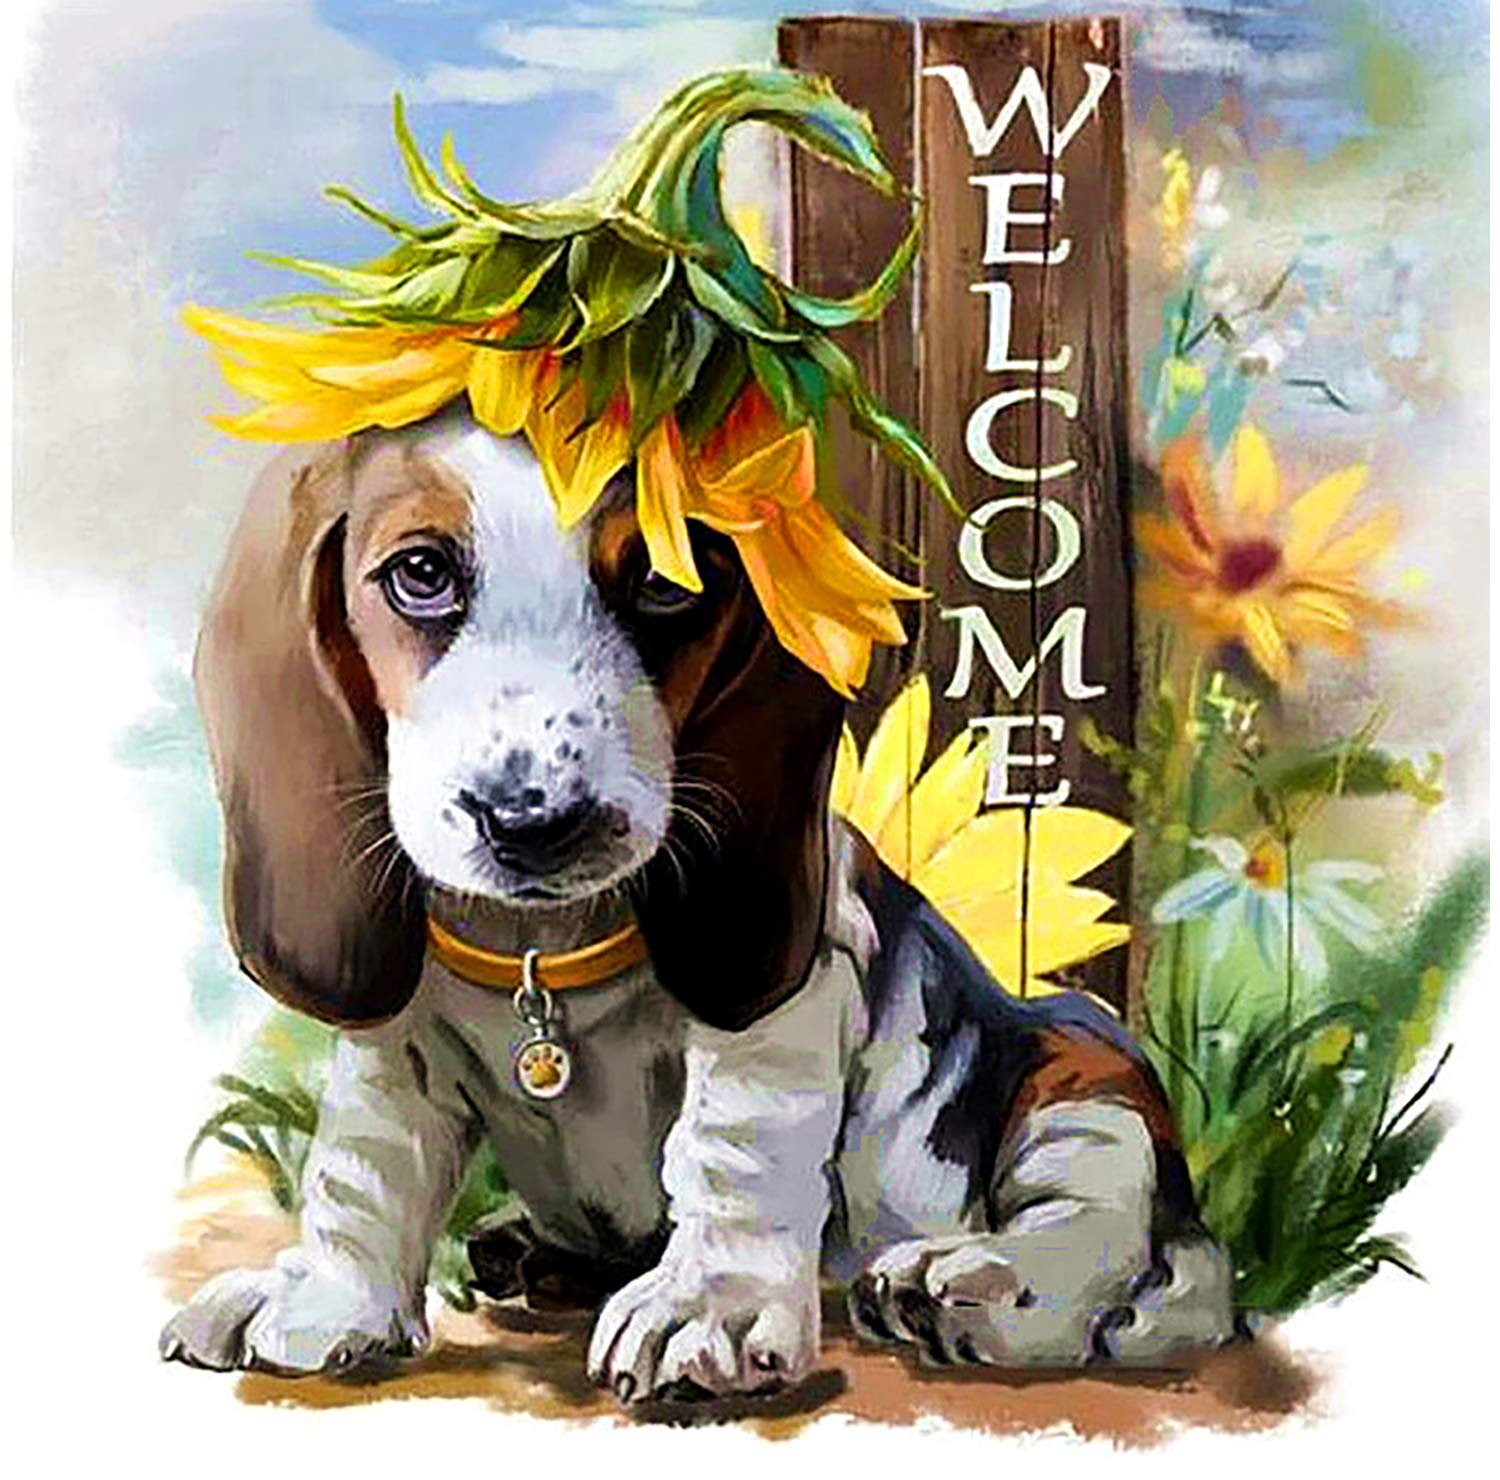 Huacan 5D Stitch Diamond Painting Dog Kit for Beginners Kids Adults Full Drill Crystal Art DIY Welcome Wall Hanging Gift Puppy and Sunflower 30x30cm